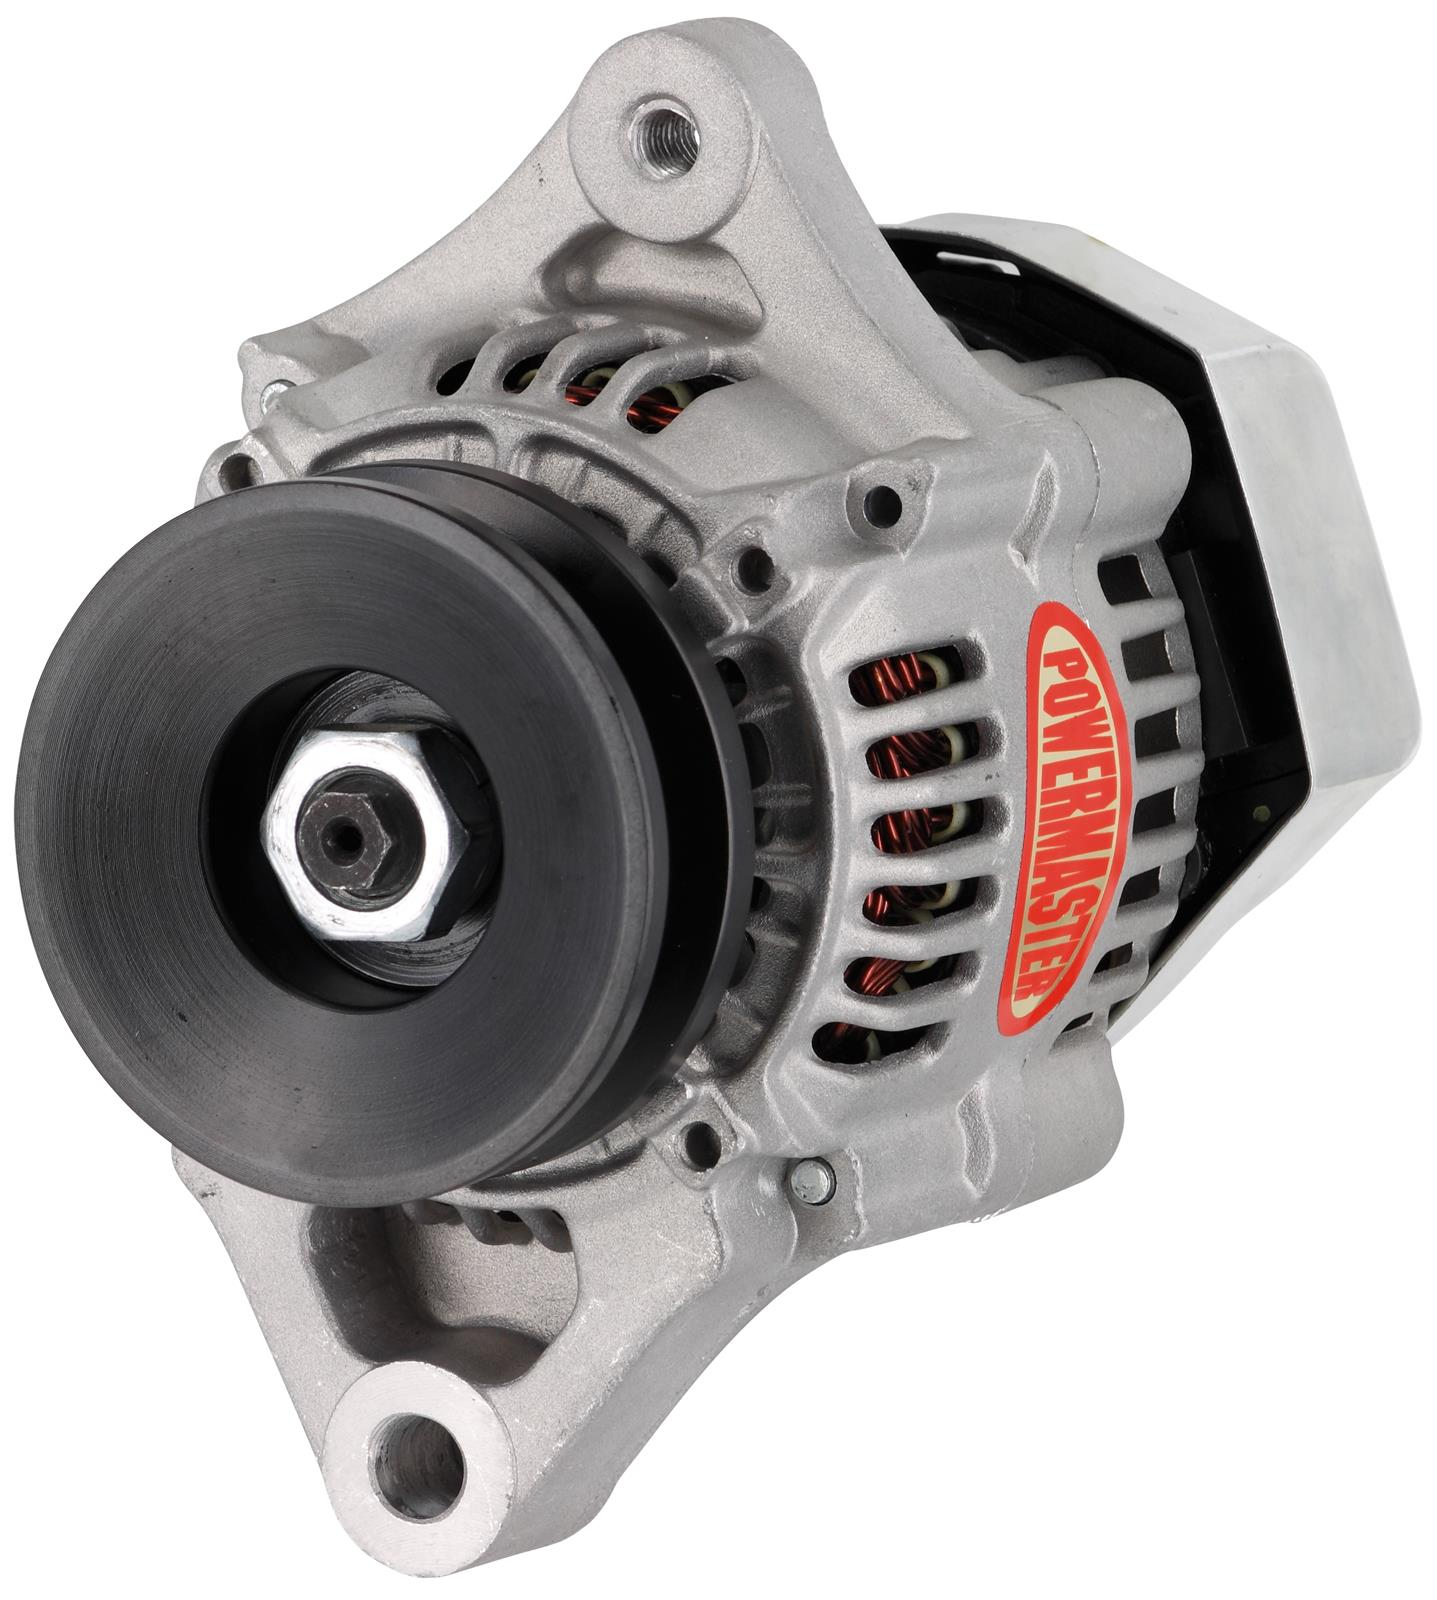 Powermaster race alternators 8172 free shipping on orders over 99 powermaster race alternators 8172 free shipping on orders over 99 at summit racing cheapraybanclubmaster Images